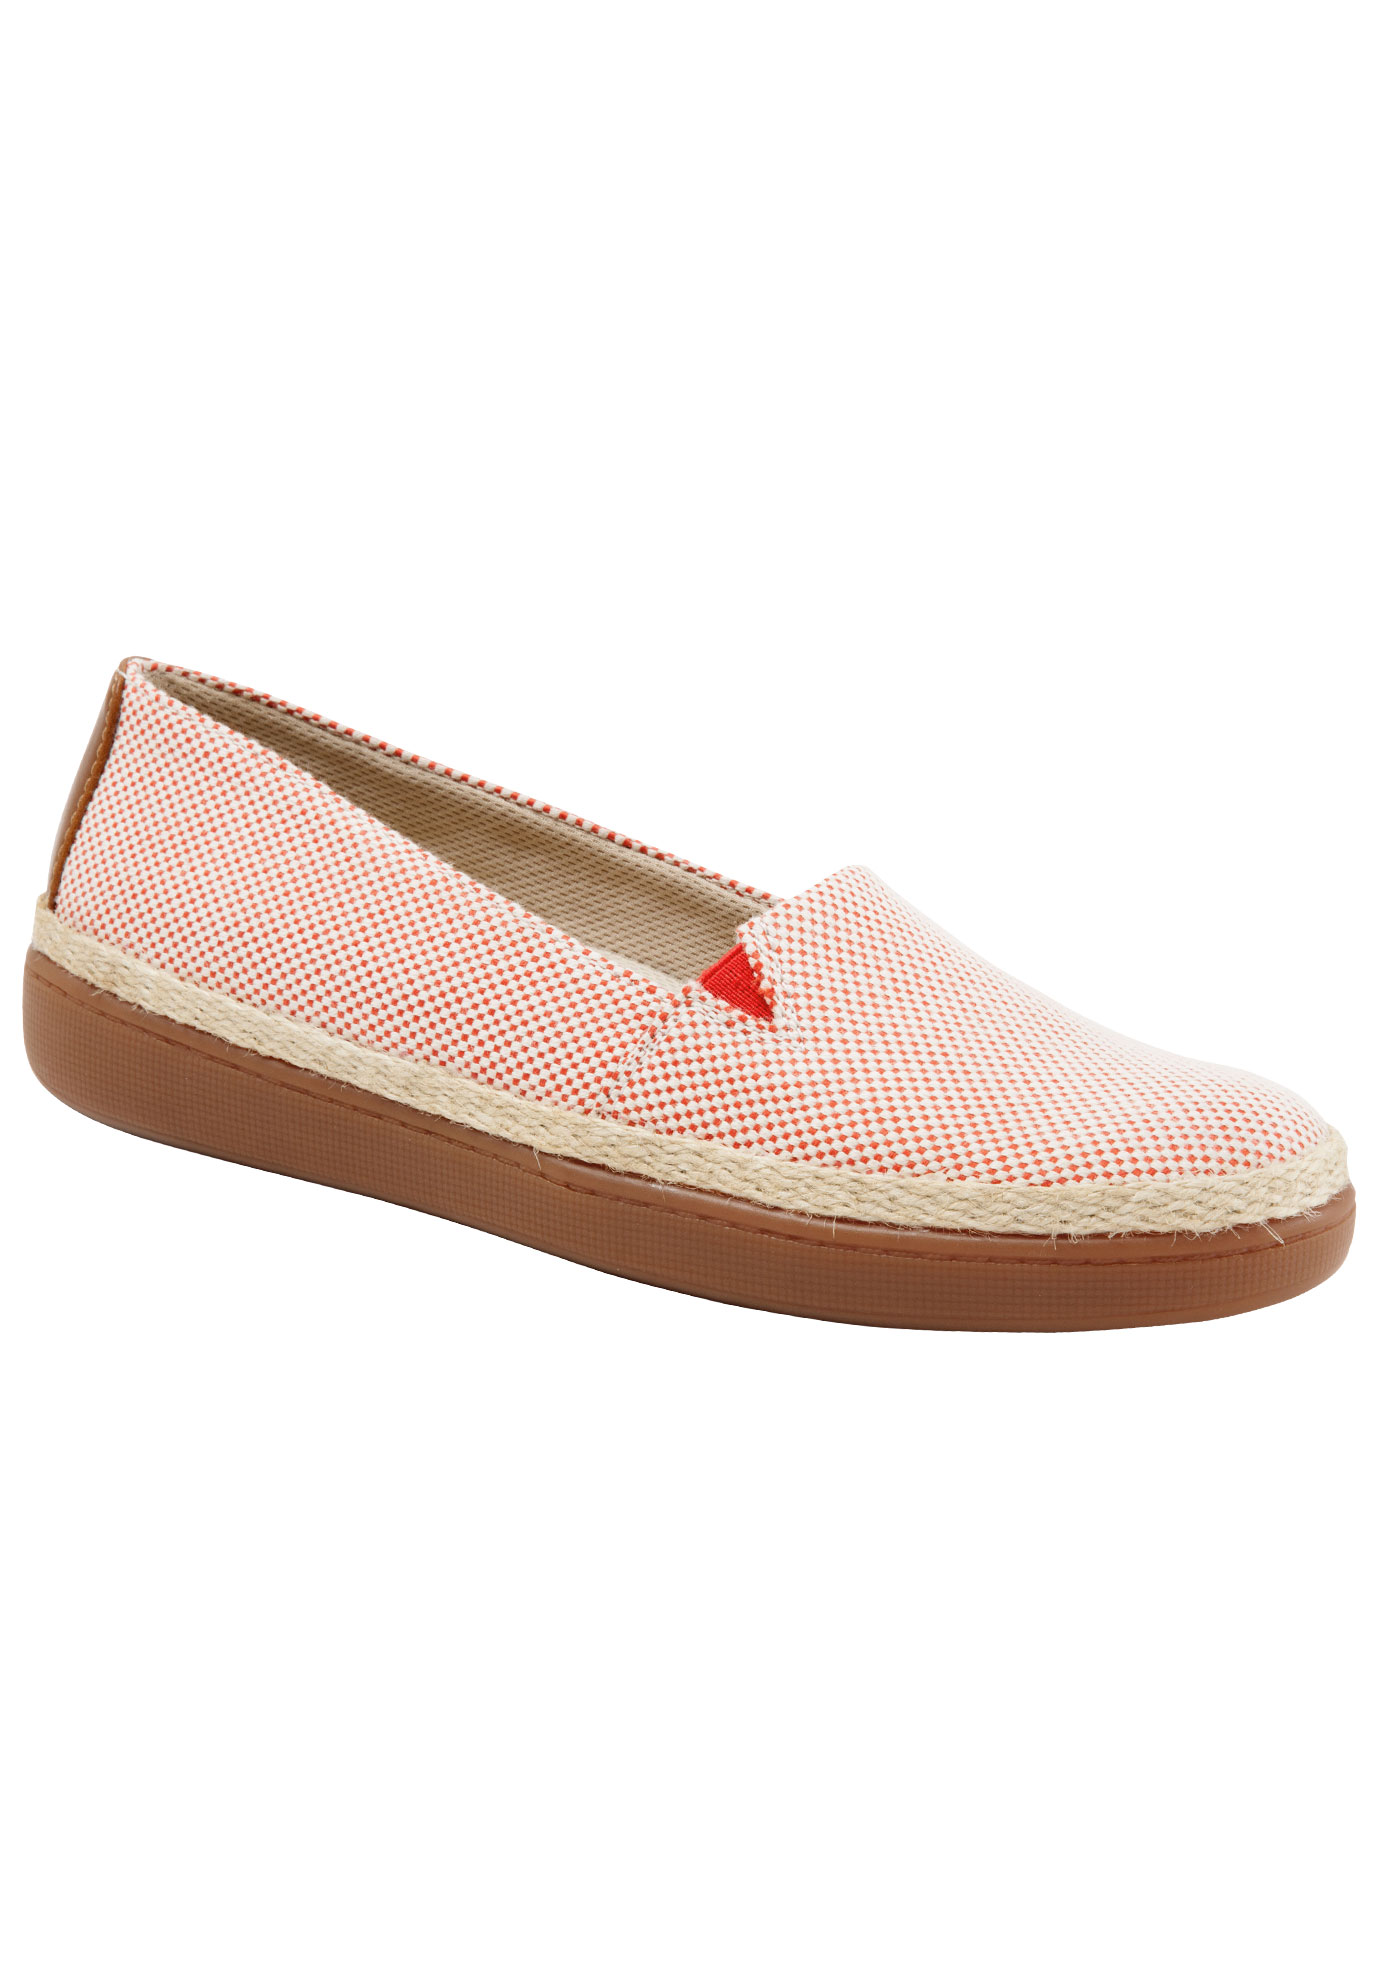 Trotters Accent Slip-On Espadrille PtHuo9Y